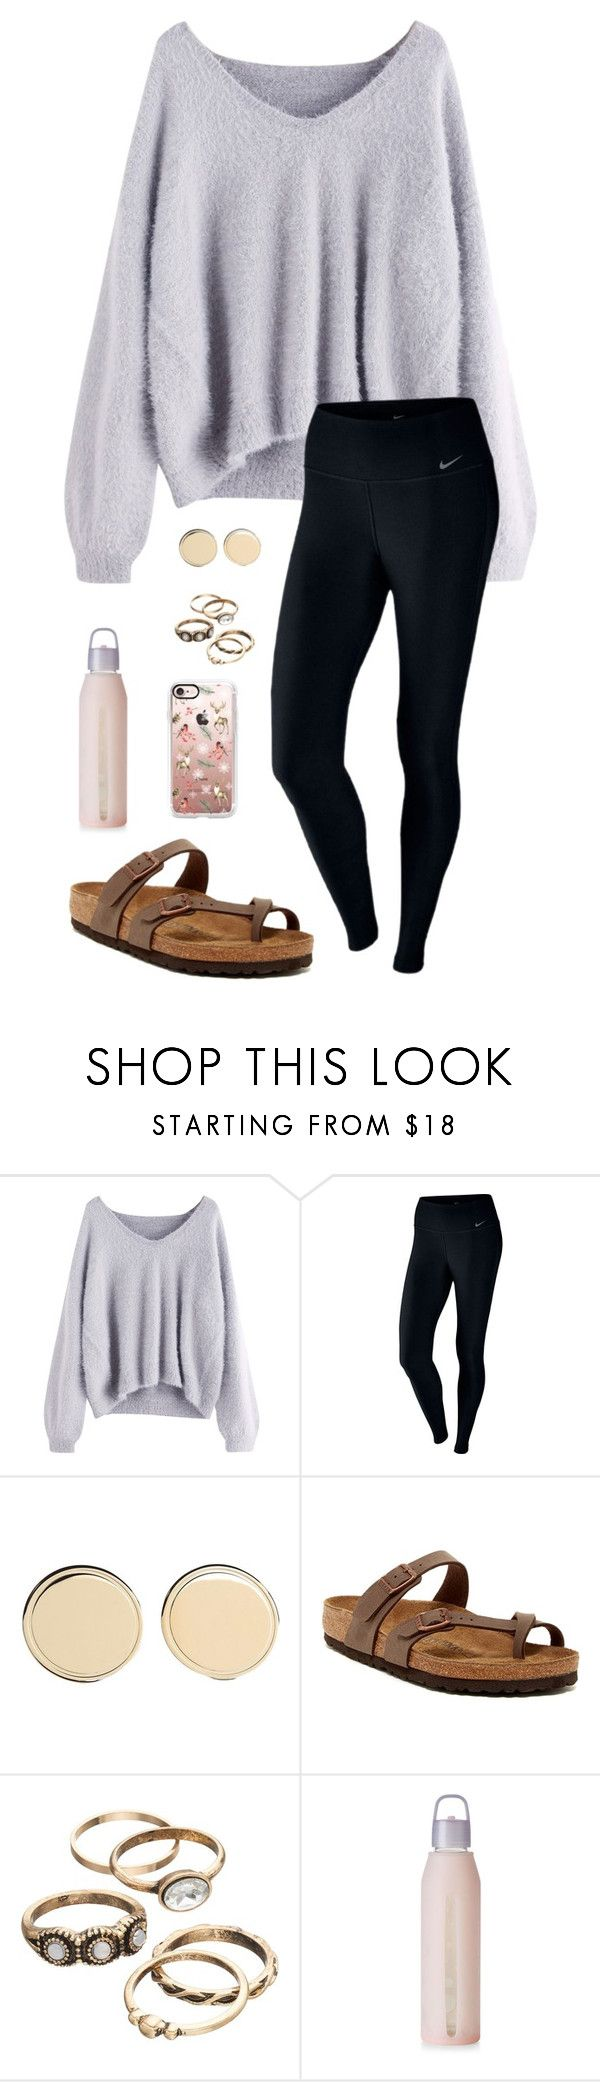 """I am SO NOT READY FOR SCHOOL TOMORROW "" by trujilloxochitl ❤ liked on Polyvore featuring NIKE, Givenchy, Birkenstock, lululemon and Casetify"